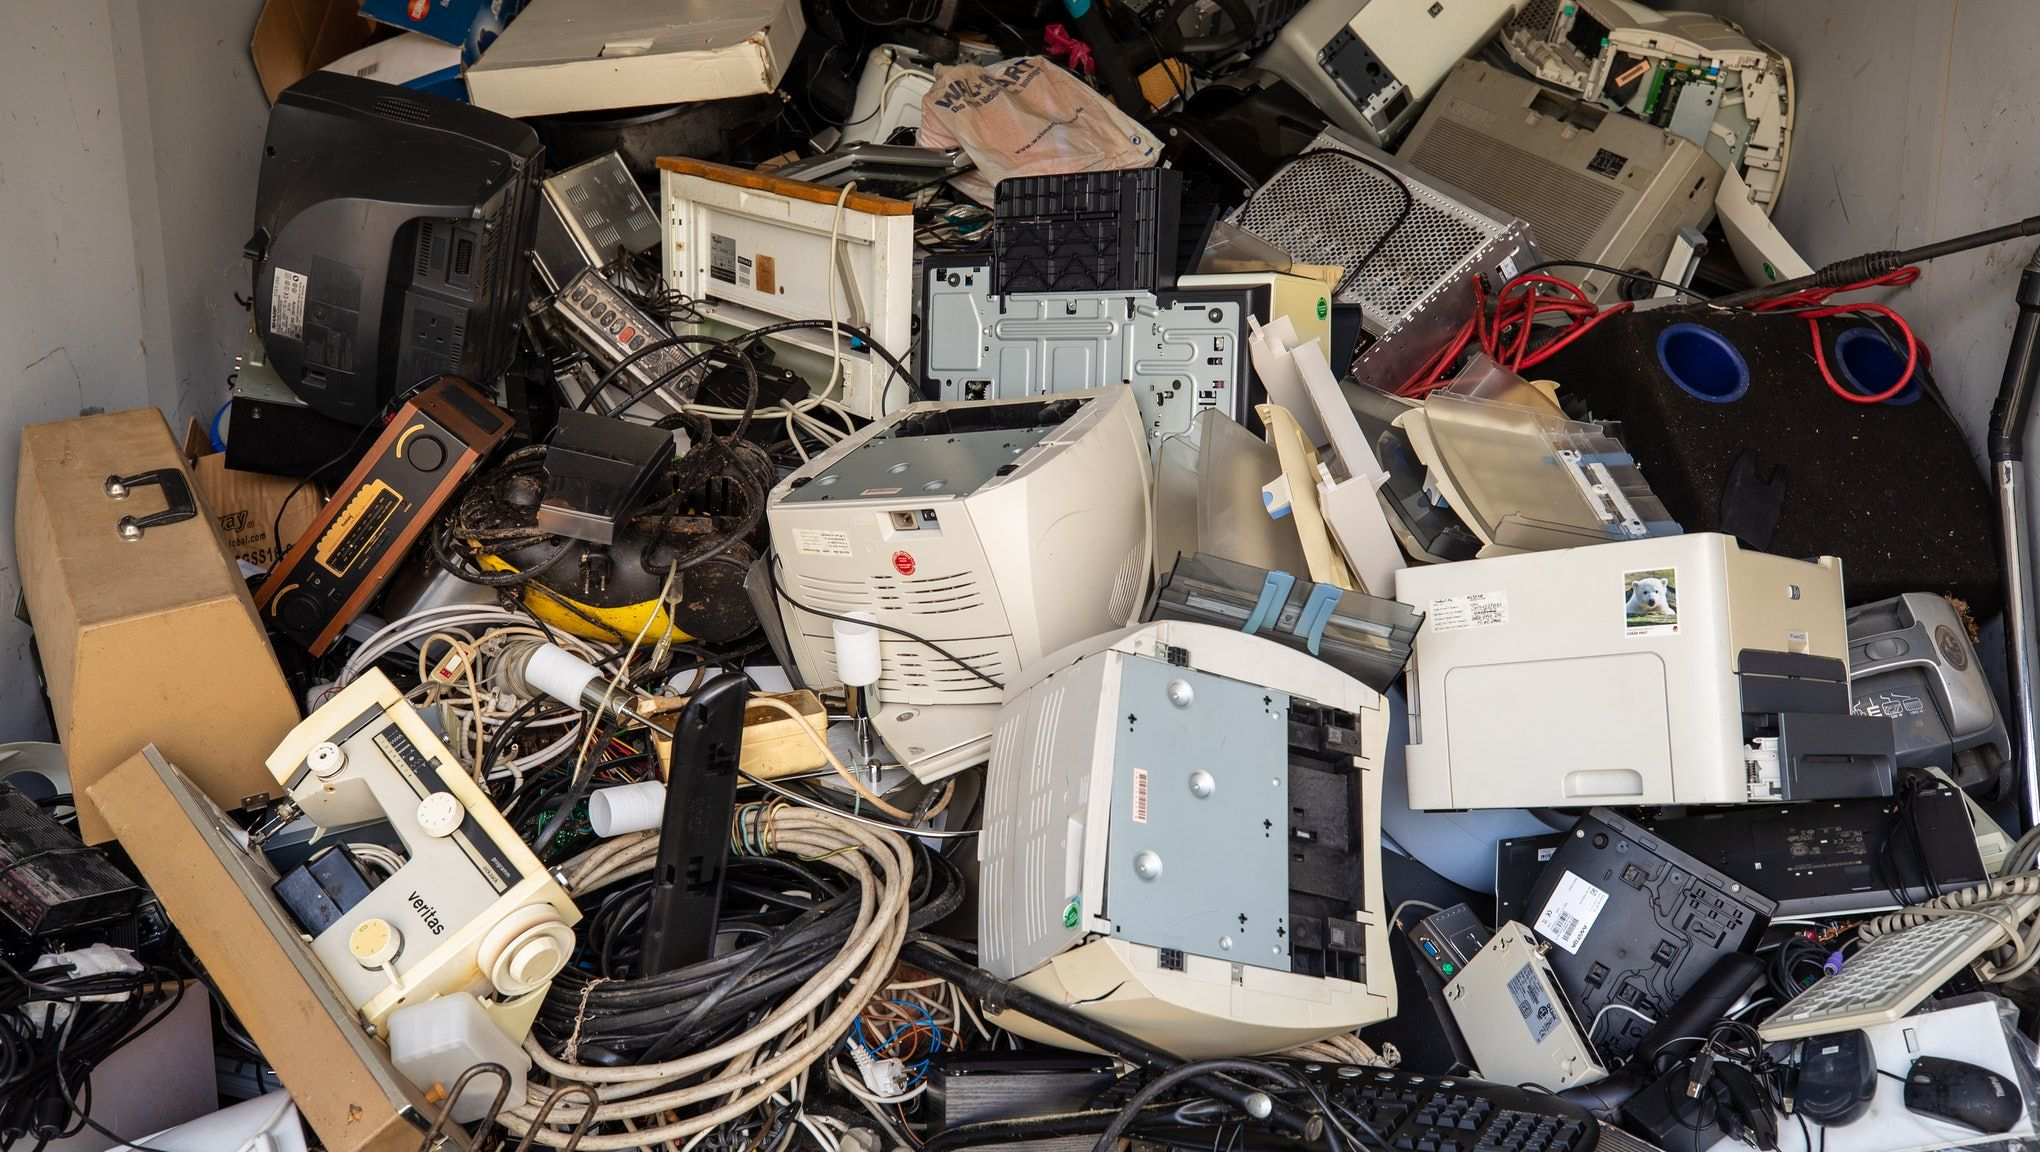 E Waste Is A Harmful And Growing Problem Here S How To Recycle Your Old Electronics In 2020 Electronic Waste Electronic Waste Recycling E Waste Recycling